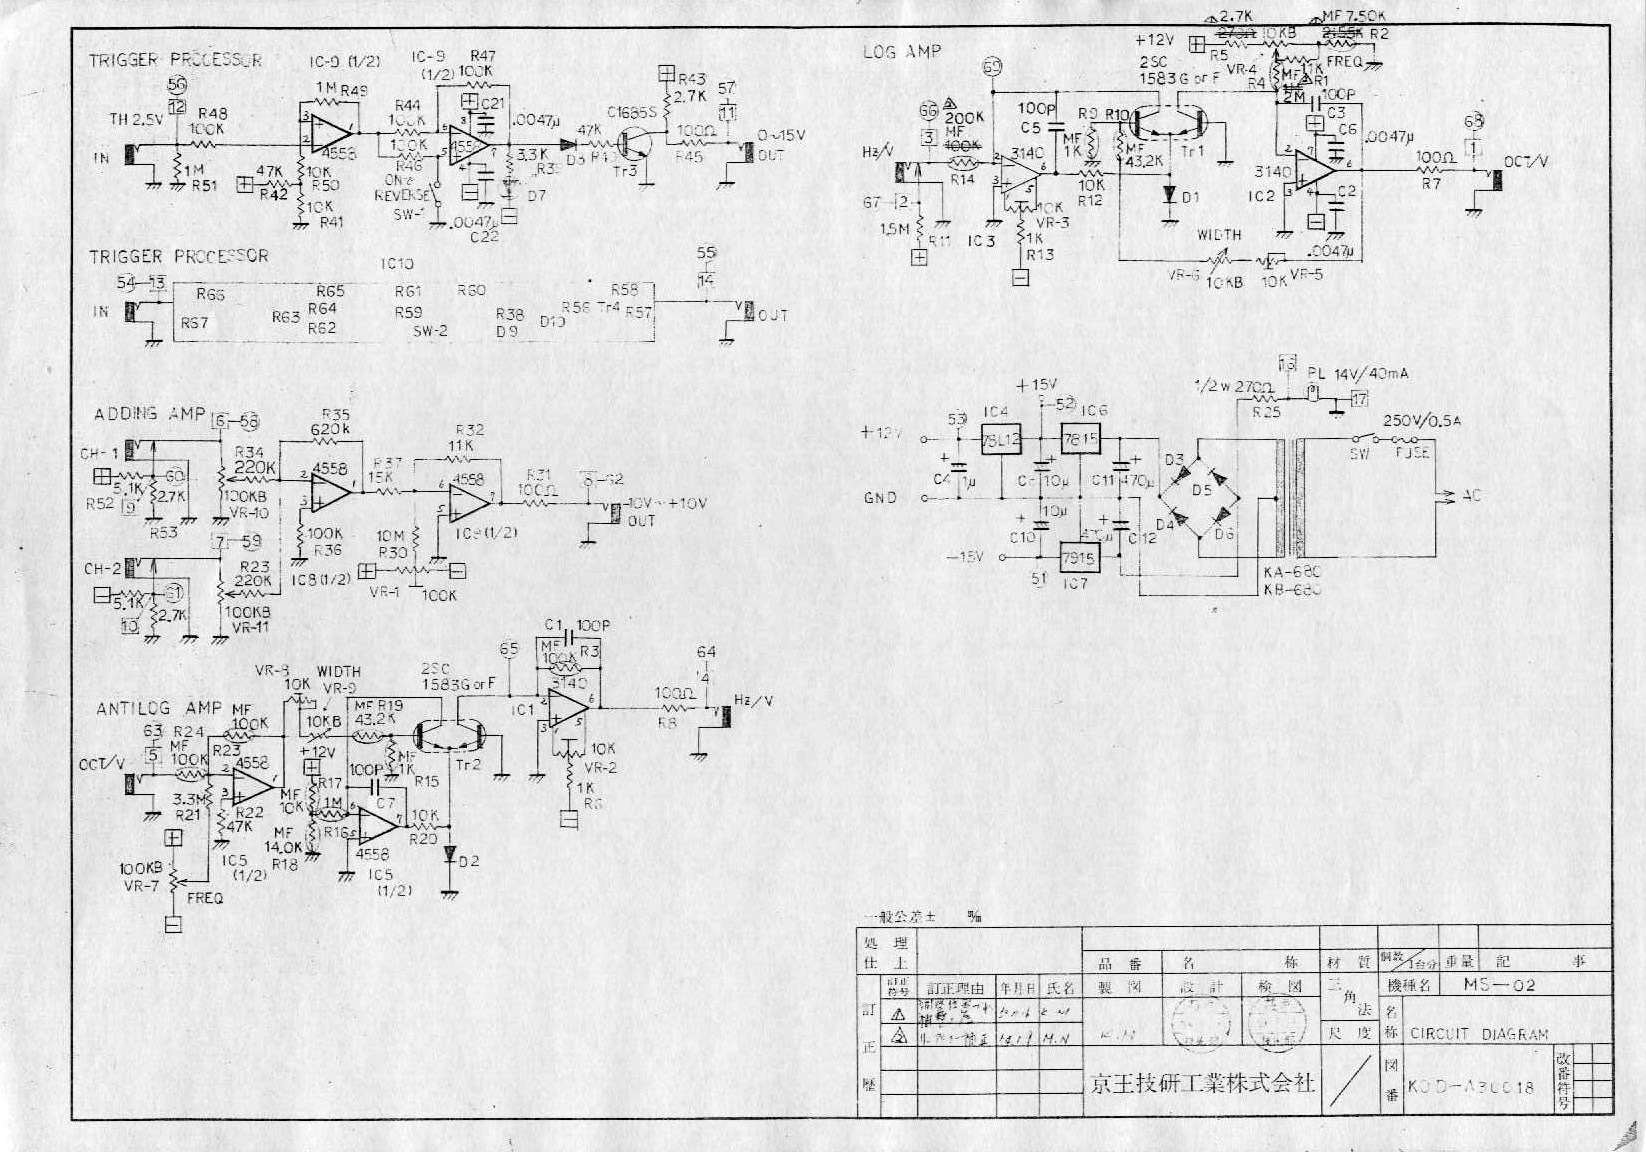 Index Of Tree Korg Bike Wiring Diagram Pdf Ms 02 Schematic